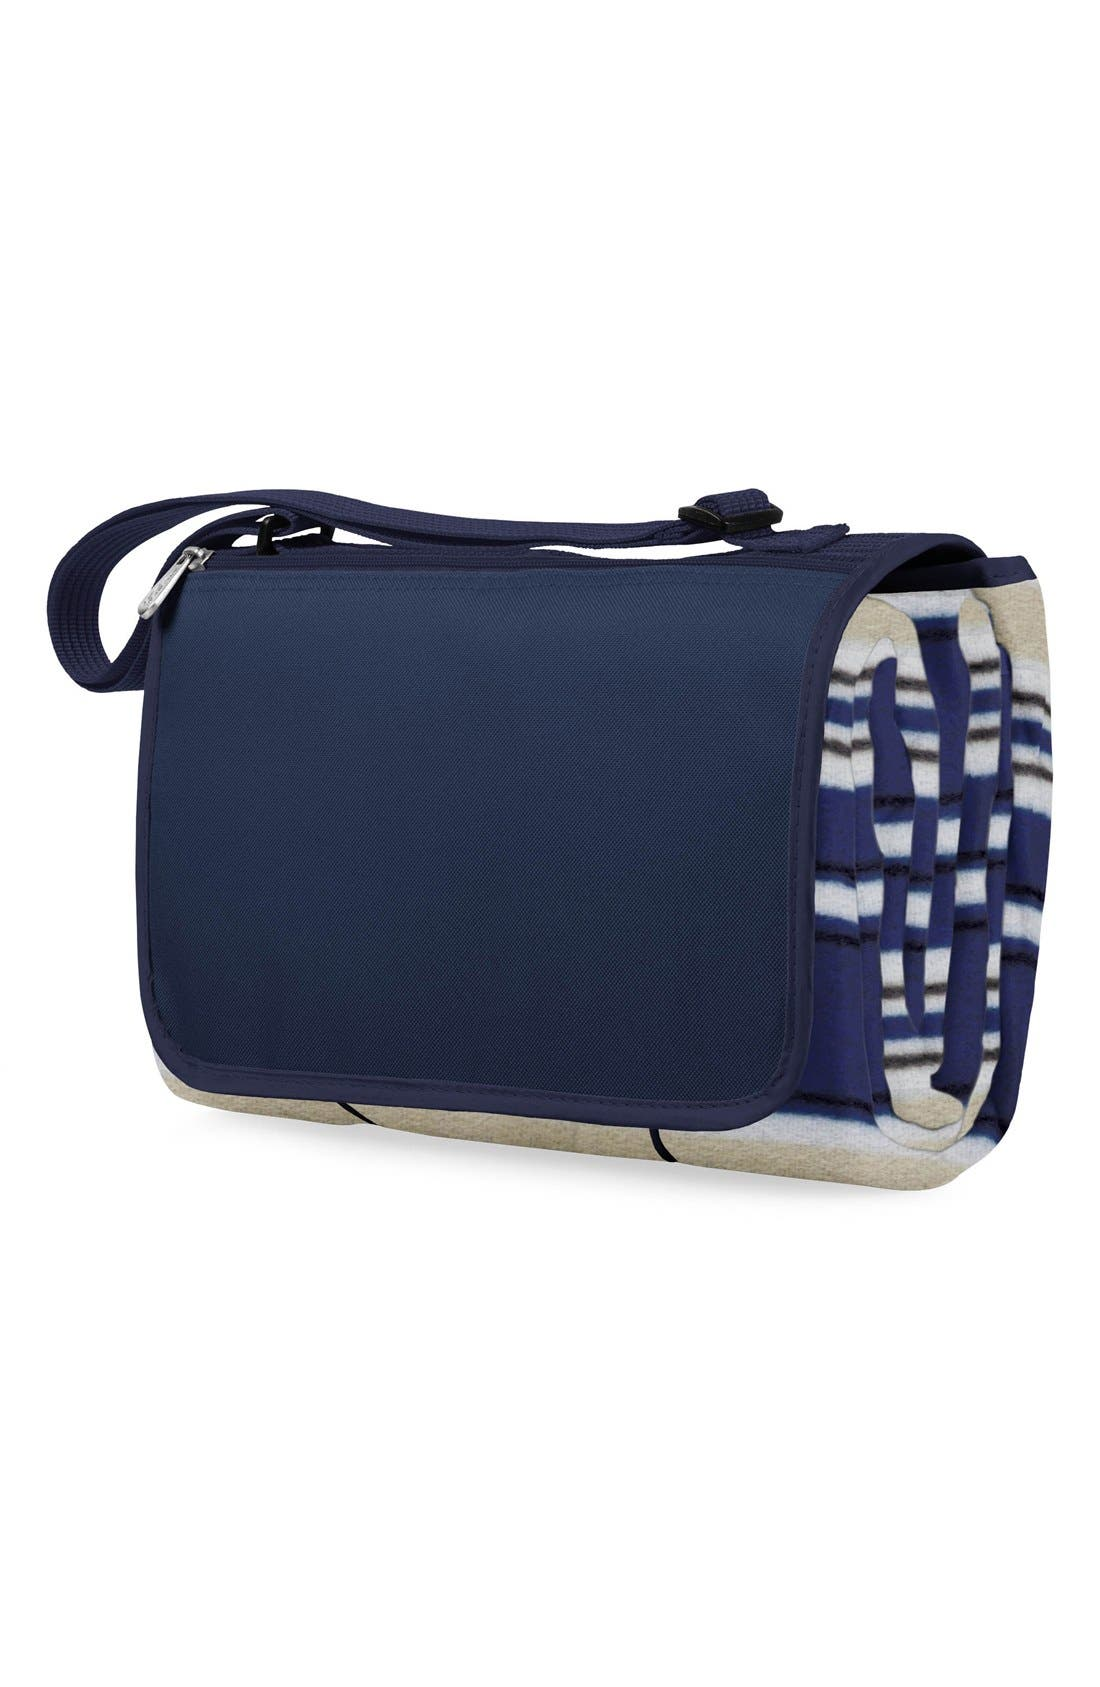 Blanket Tote,                         Main,                         color, Blue